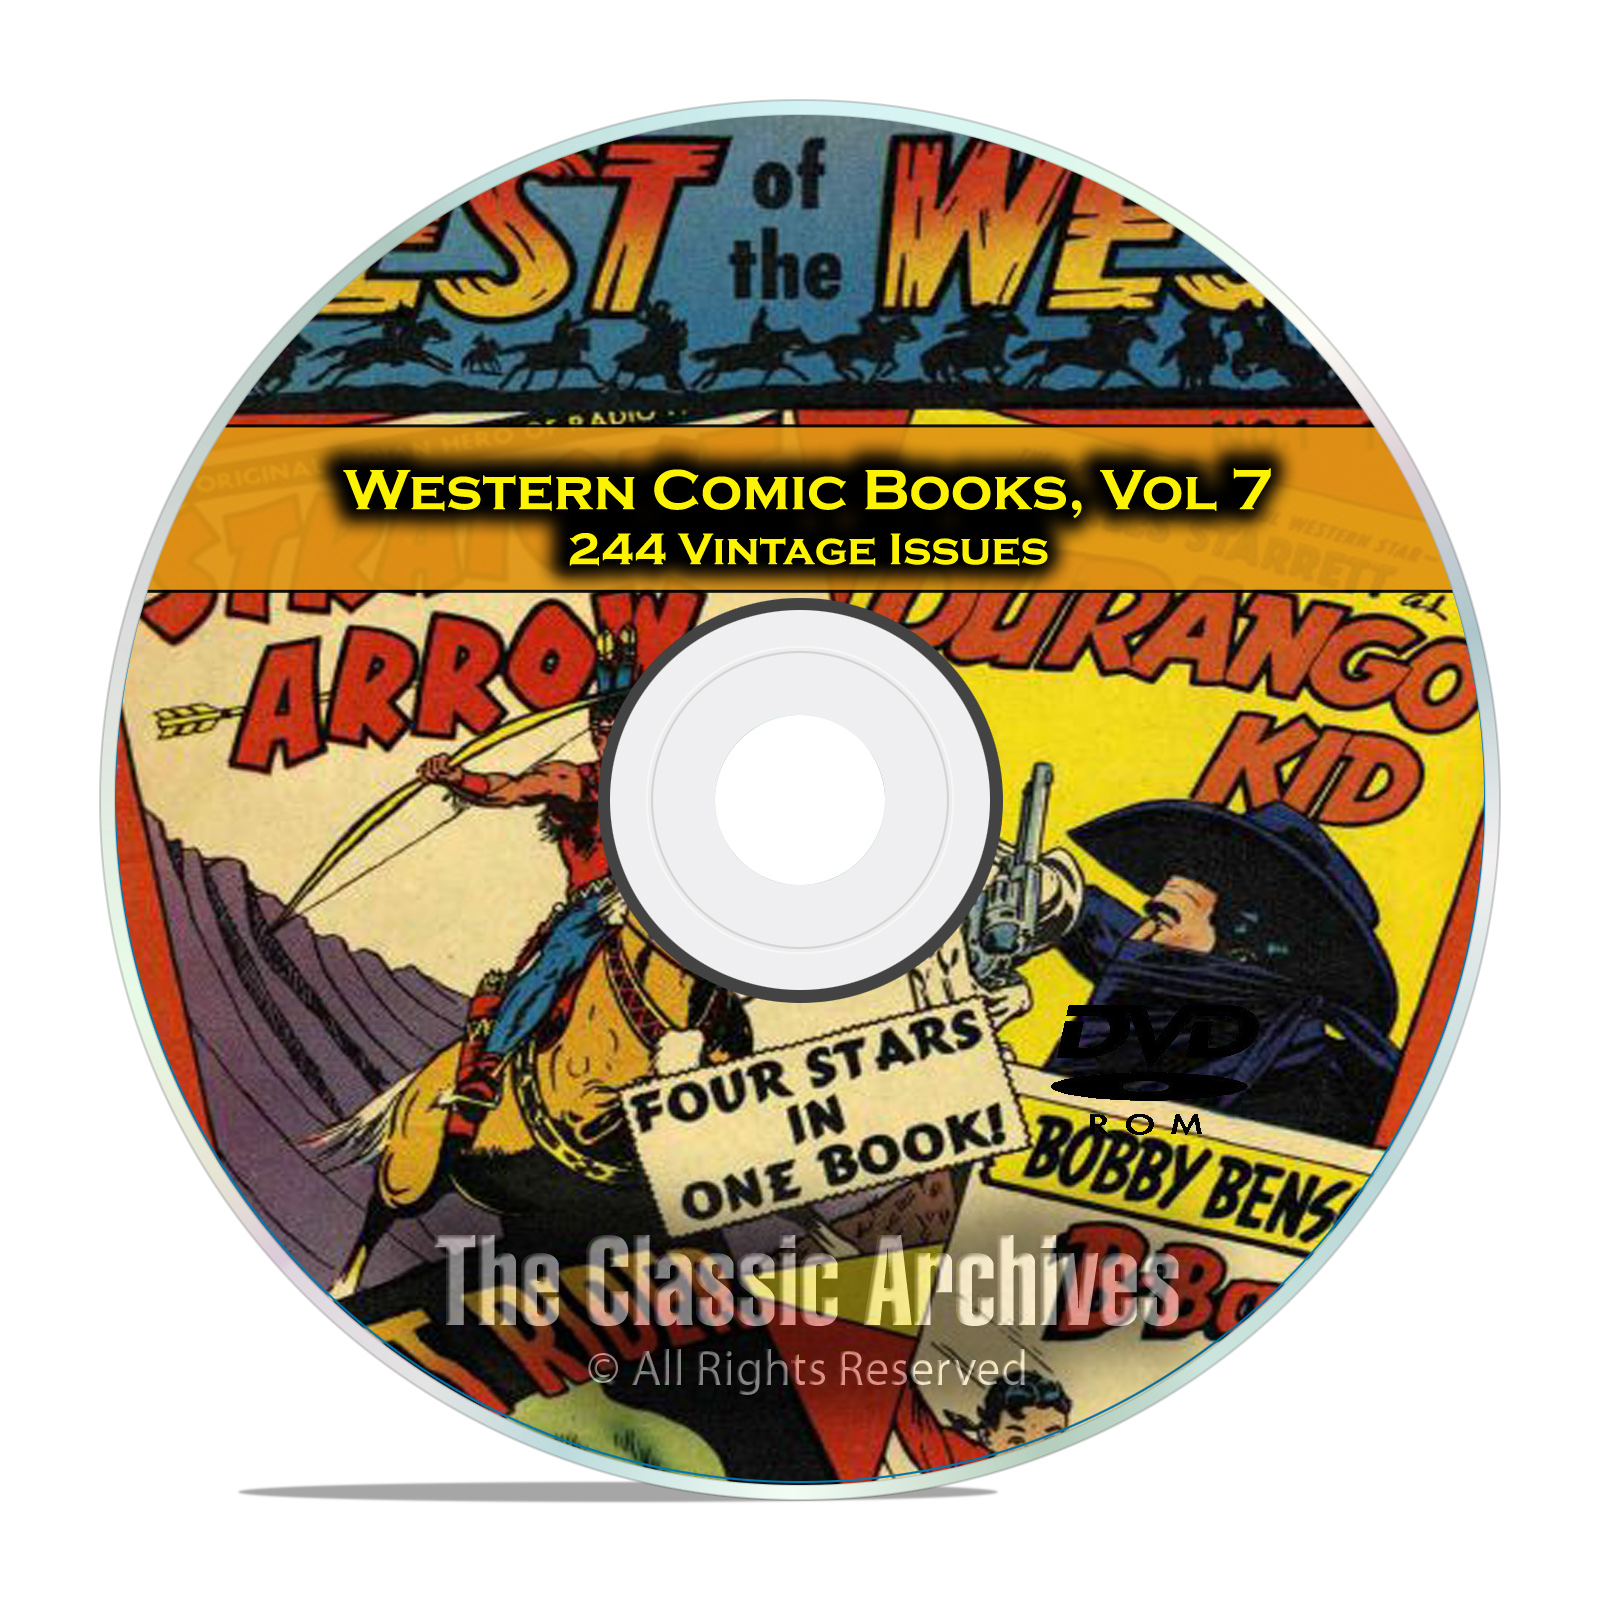 Western Comic Books, Vol 7, Best of the West, Straight Arrow Golden Age DVD